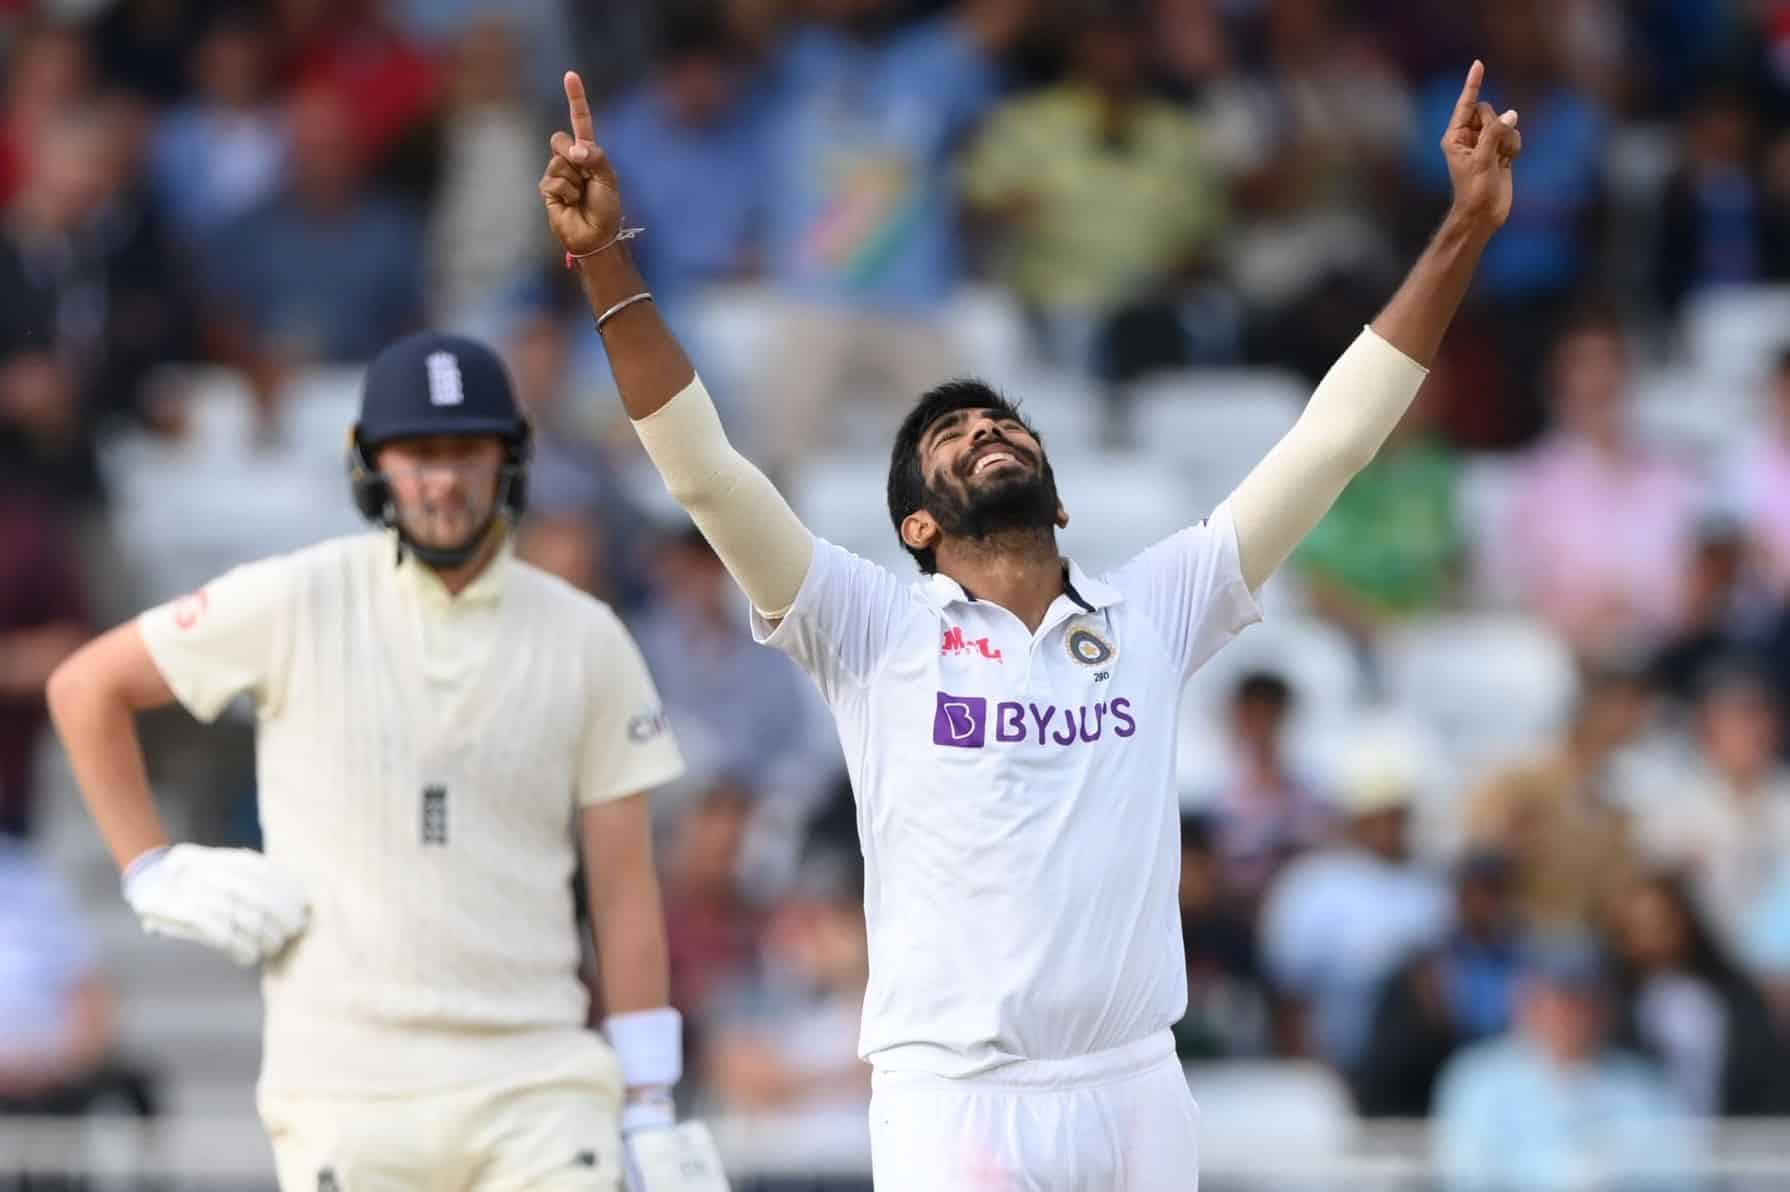 IND vs ENG: Twitter Reacts As Jasprit Bumrah Picked Up His Second 5-Wicket Haul At Trent Bridge